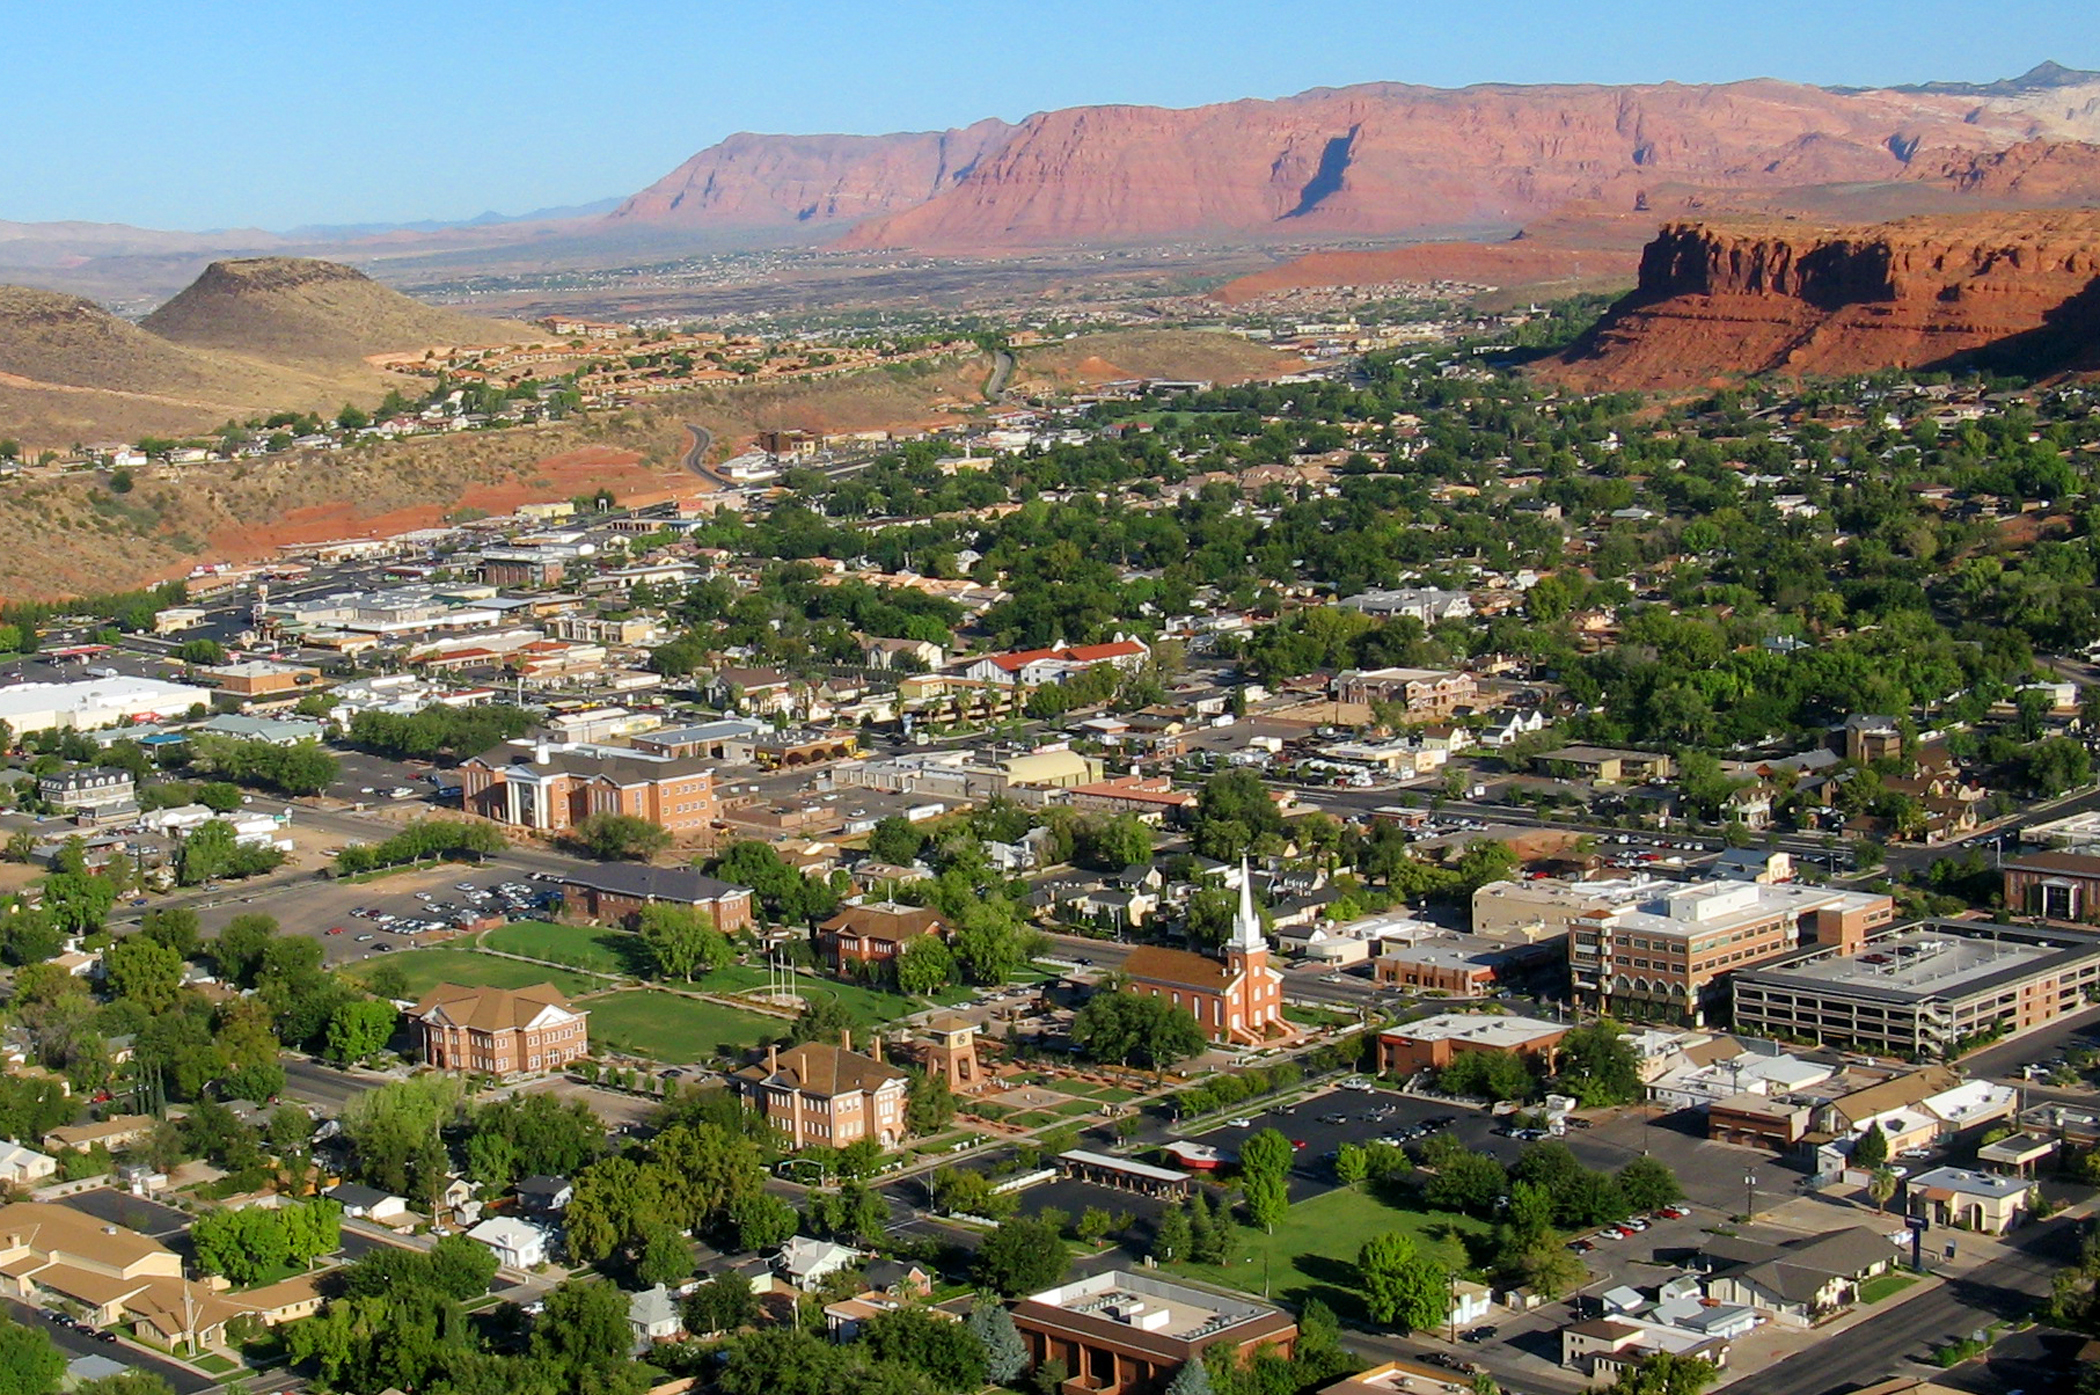 <strong>9. St. George, Utah:</strong> Located on the Utah-Arizona border, St. George is projected to experience 10.4% job growth over the next five years. In addition to its staple, tourism, fast-growing areas include transportation, education, and health services.